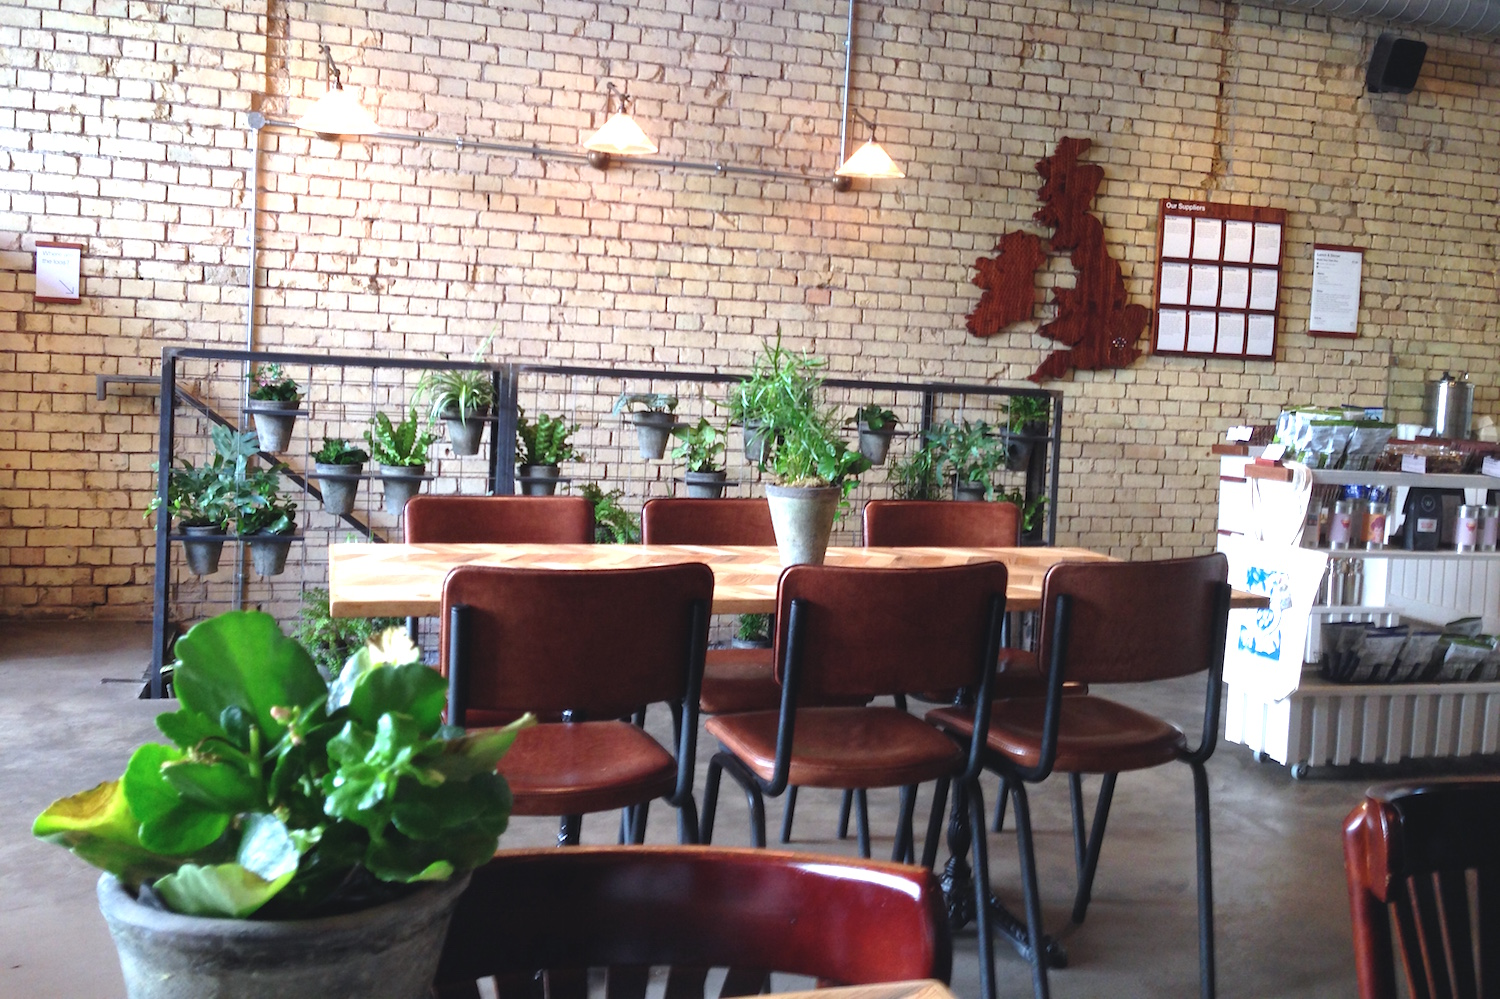 The Best Working Cafes - Farmstand